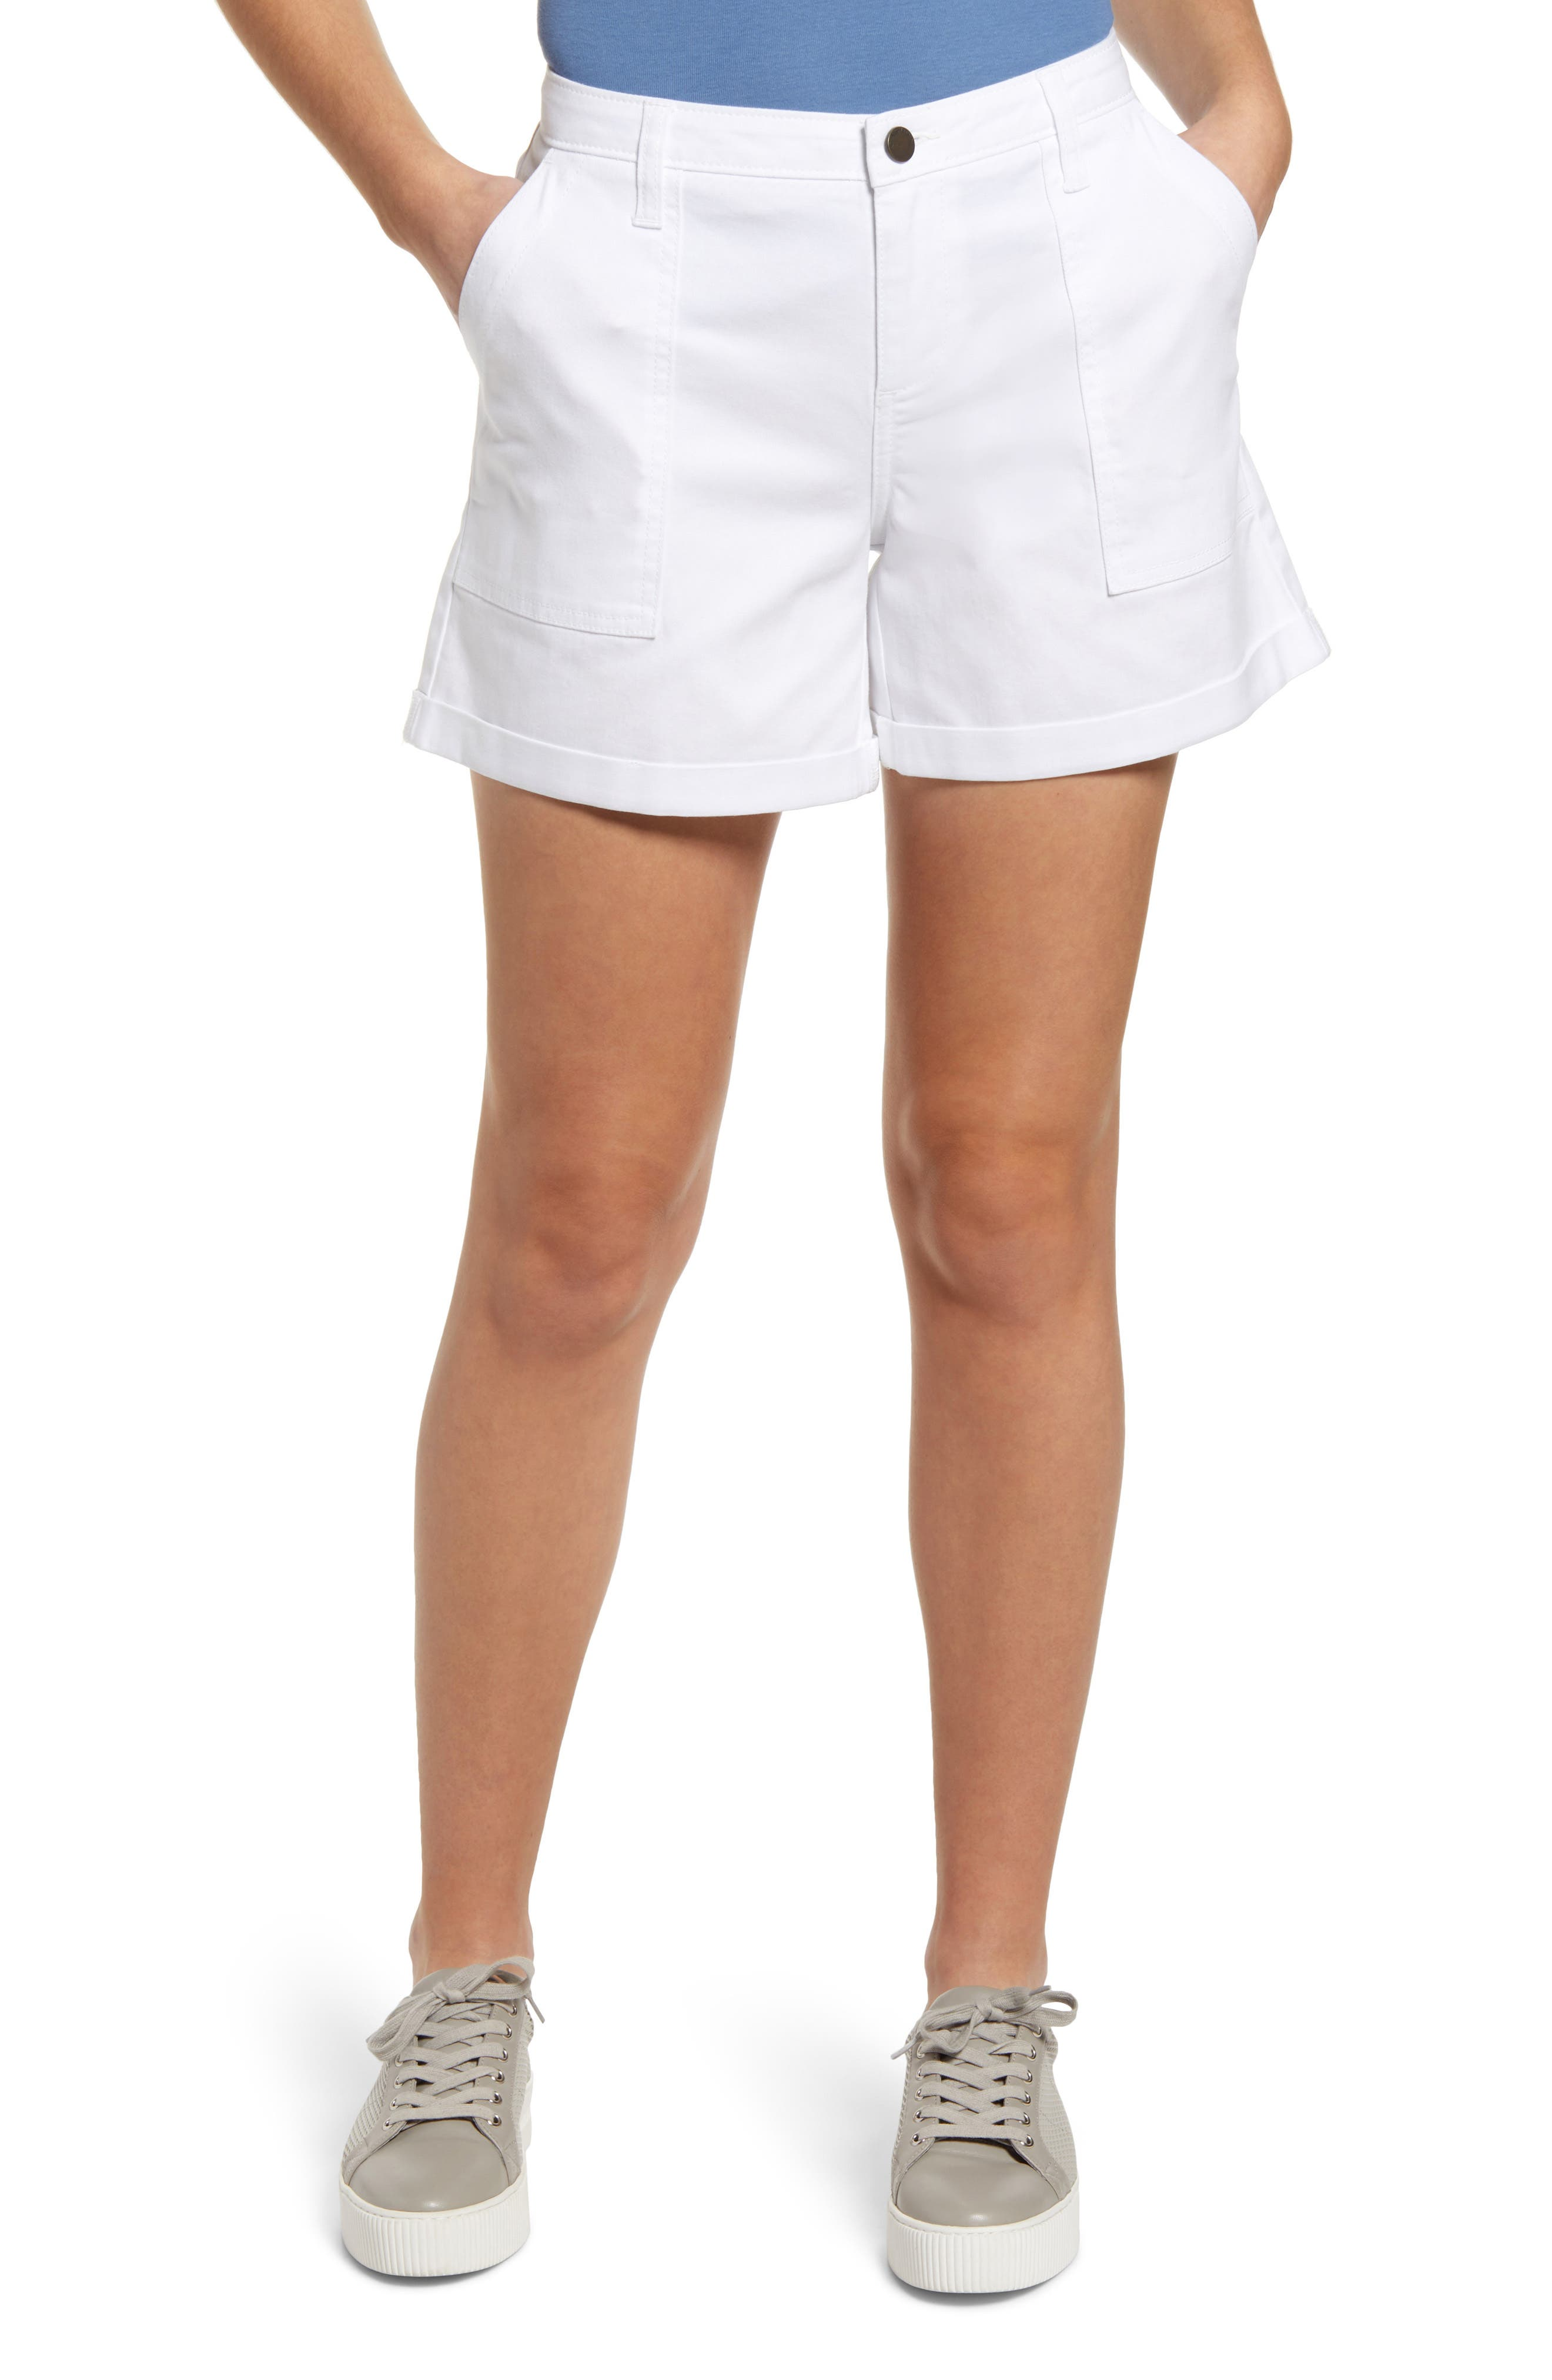 70s Shorts | Denim, High Rise, Athletic Womens Caslon Rolled Cuff Twill Shorts Size 00 - White $49.00 AT vintagedancer.com